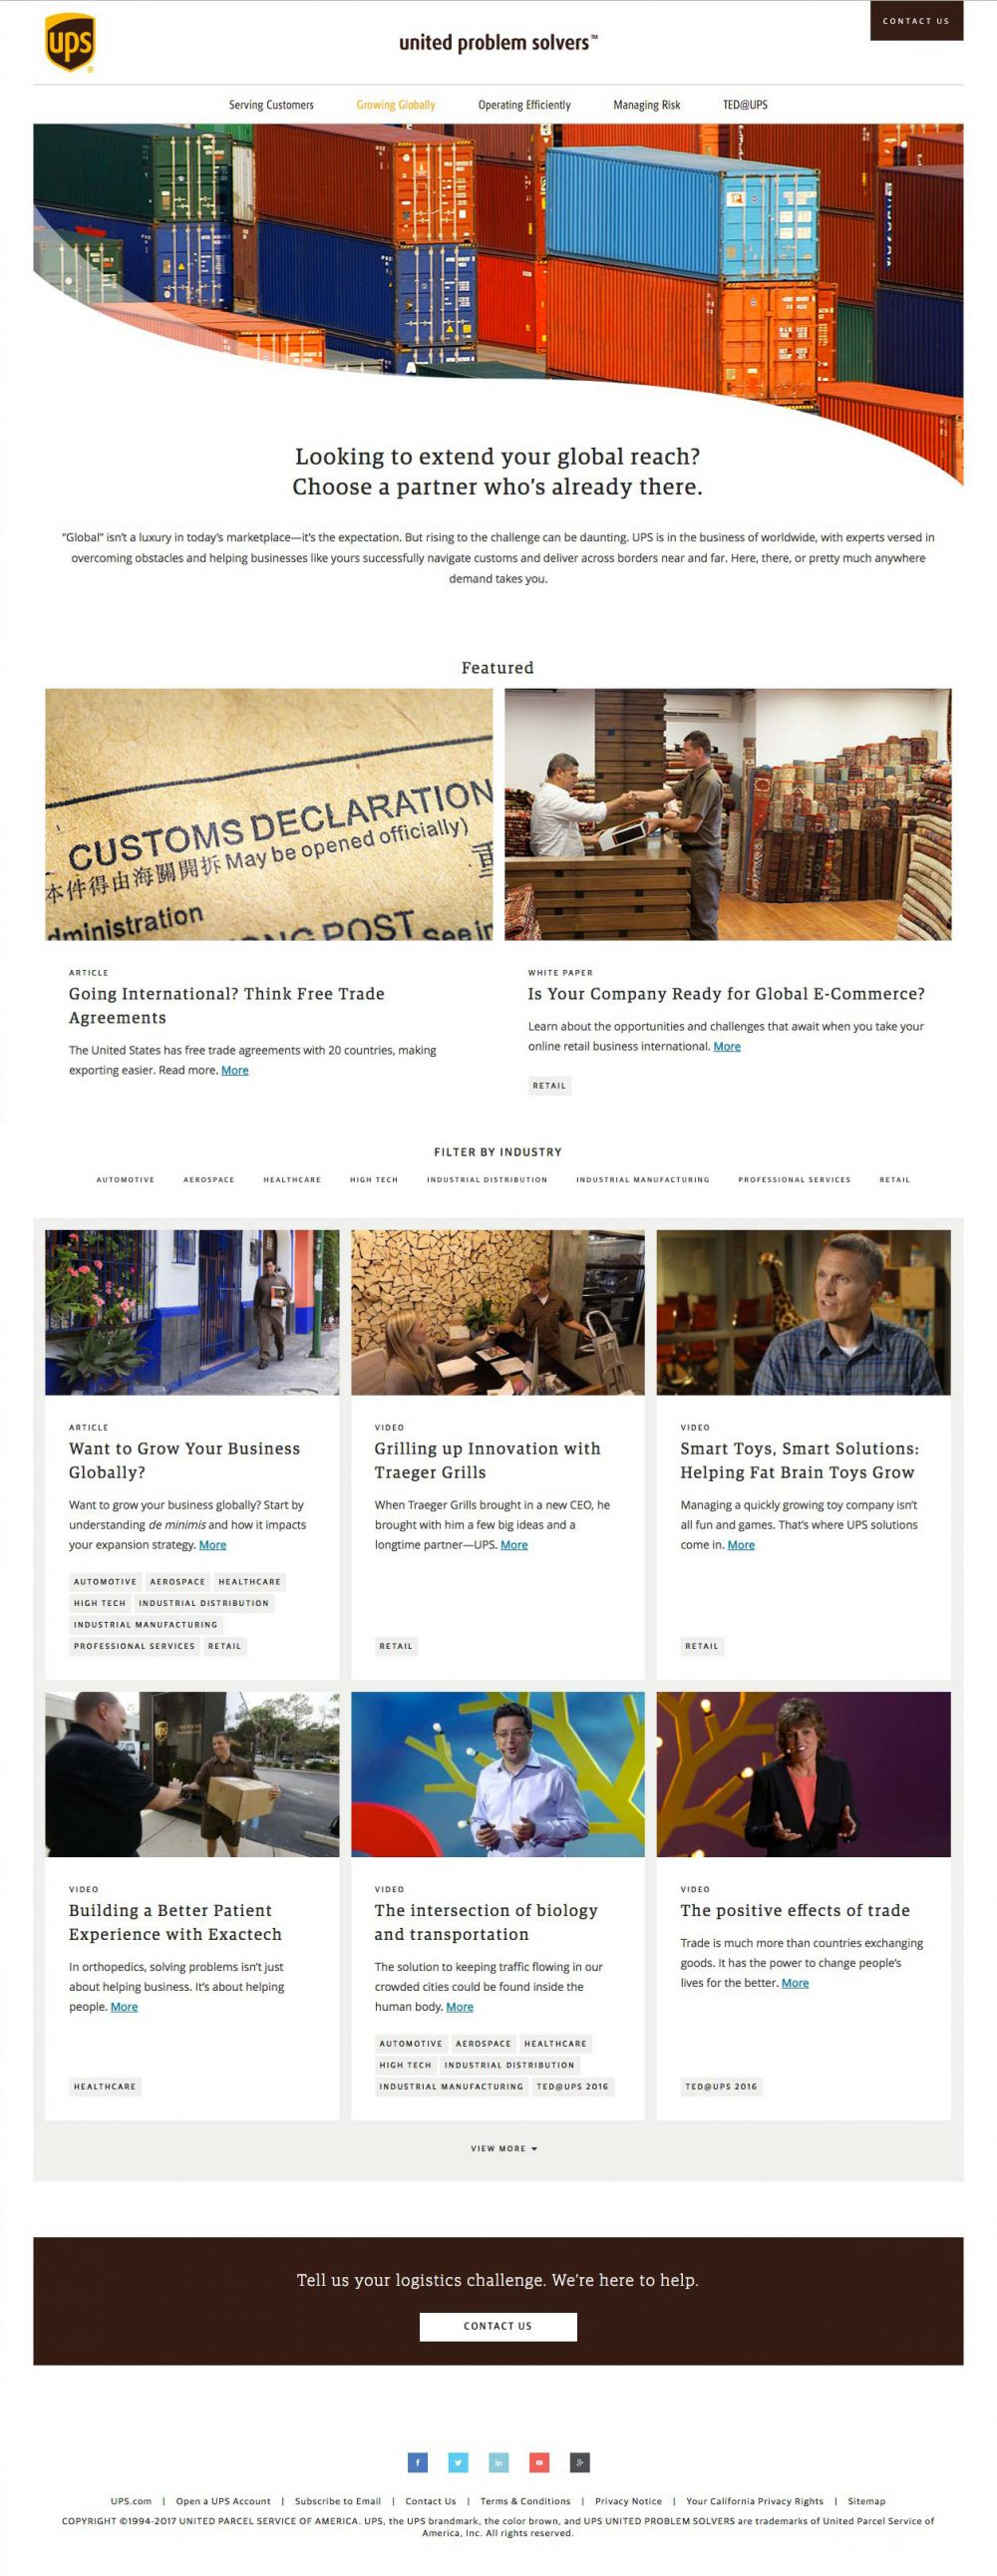 UPS Solvers Growing Globally landing page